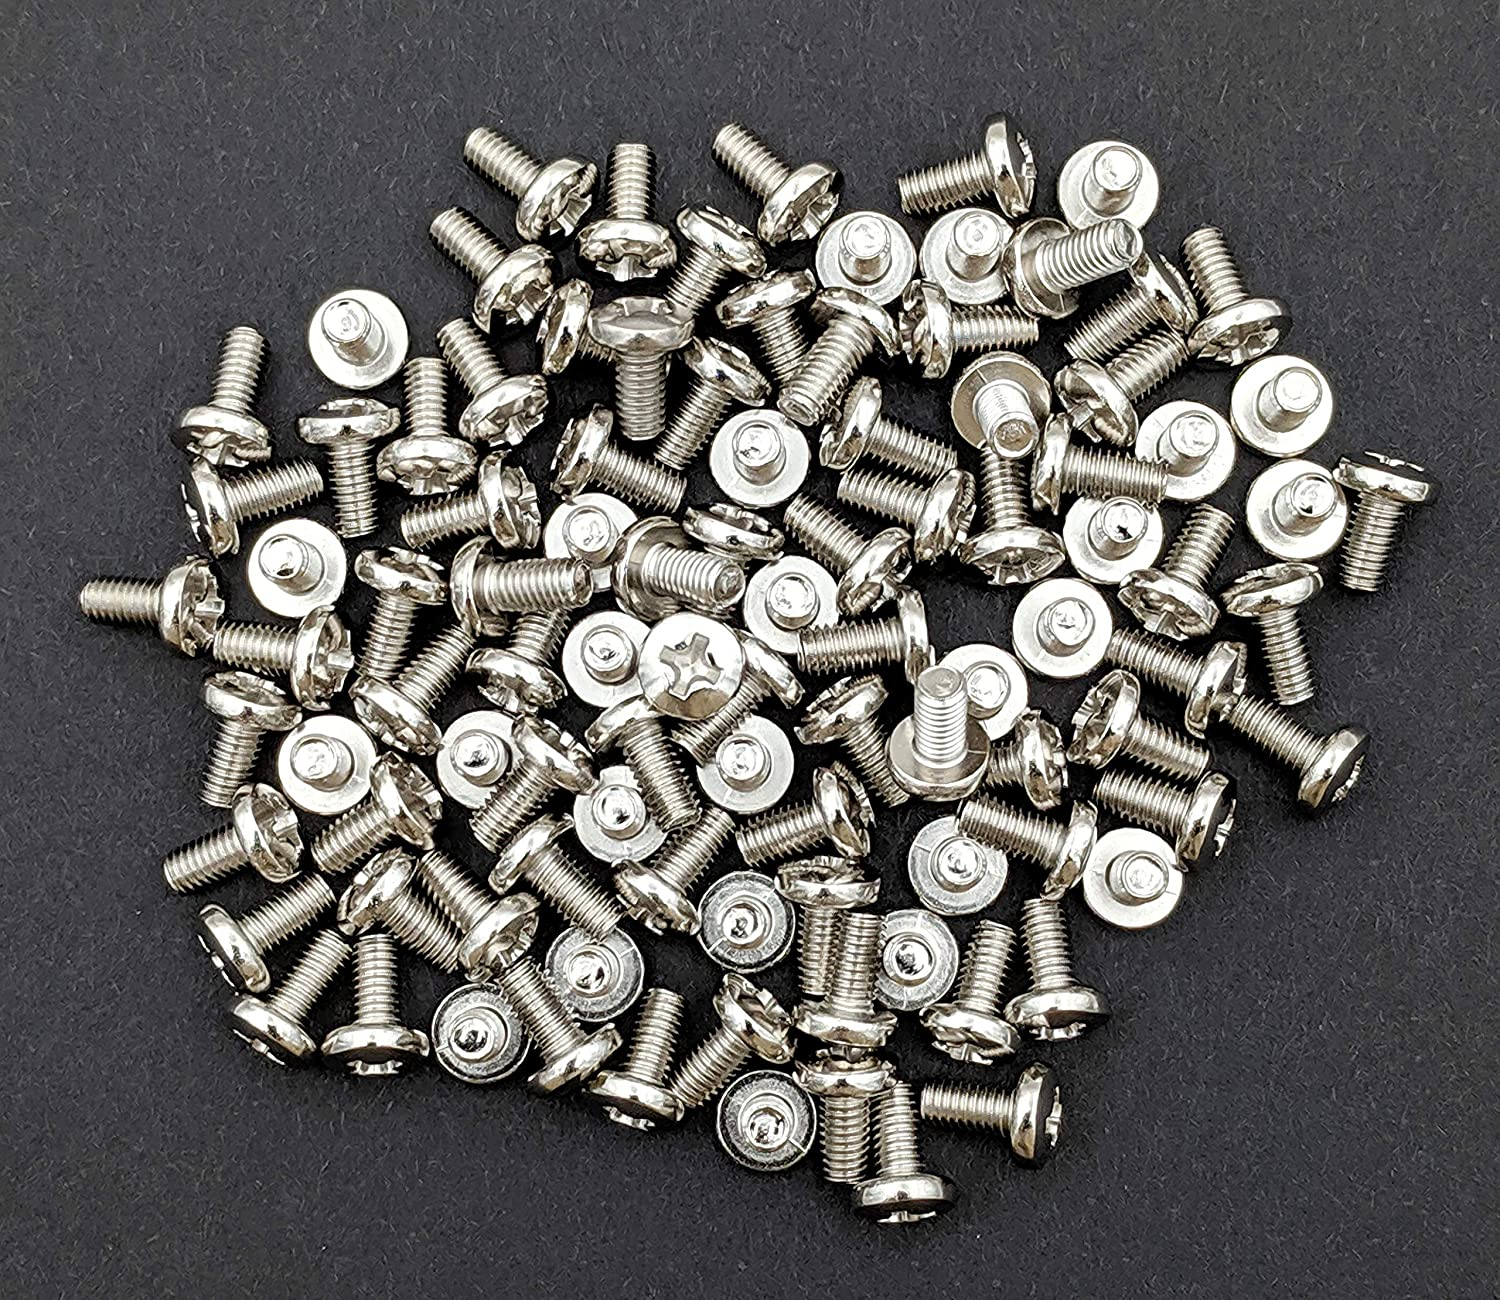 Screws for CB and 10 Meter Radios 20 Cover 20-Pack Nickel Plated Chrome Cabinet